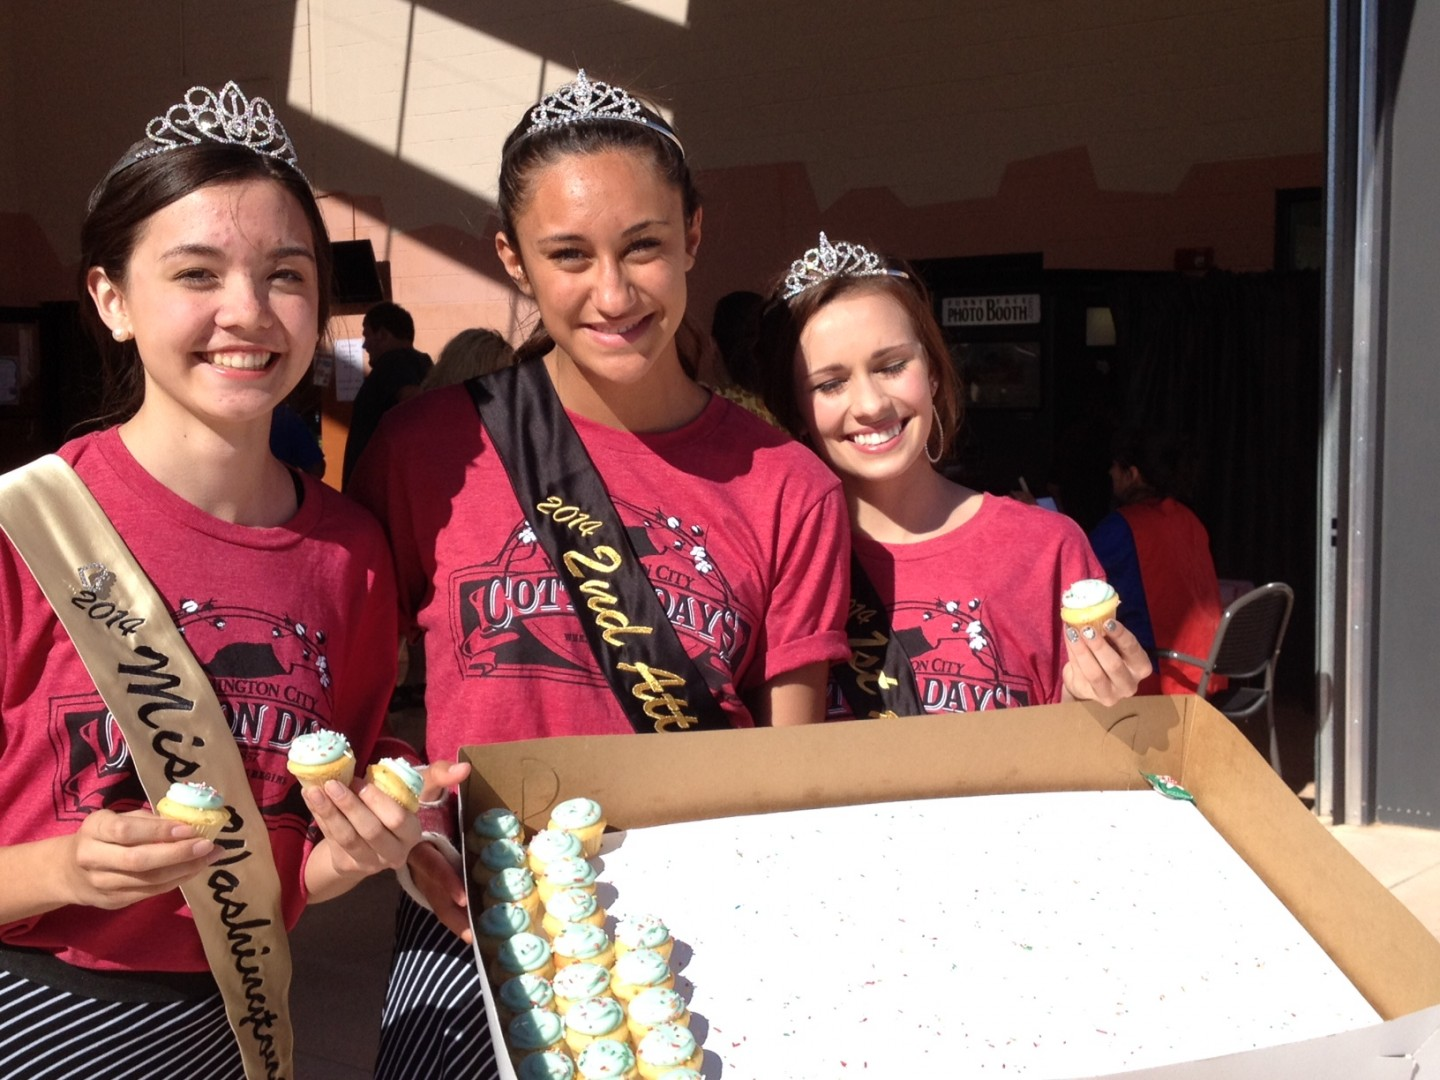 L-R, Naomi Lin, Tayvia Ahquin, Emilee Taylor, members of the Washington City Royalty hand out free cupcakes at the sixth anniversary of the Washington City Community Center, Washington City, Utah April 28, 2014 | Photo by Hollie Reina, St. George News